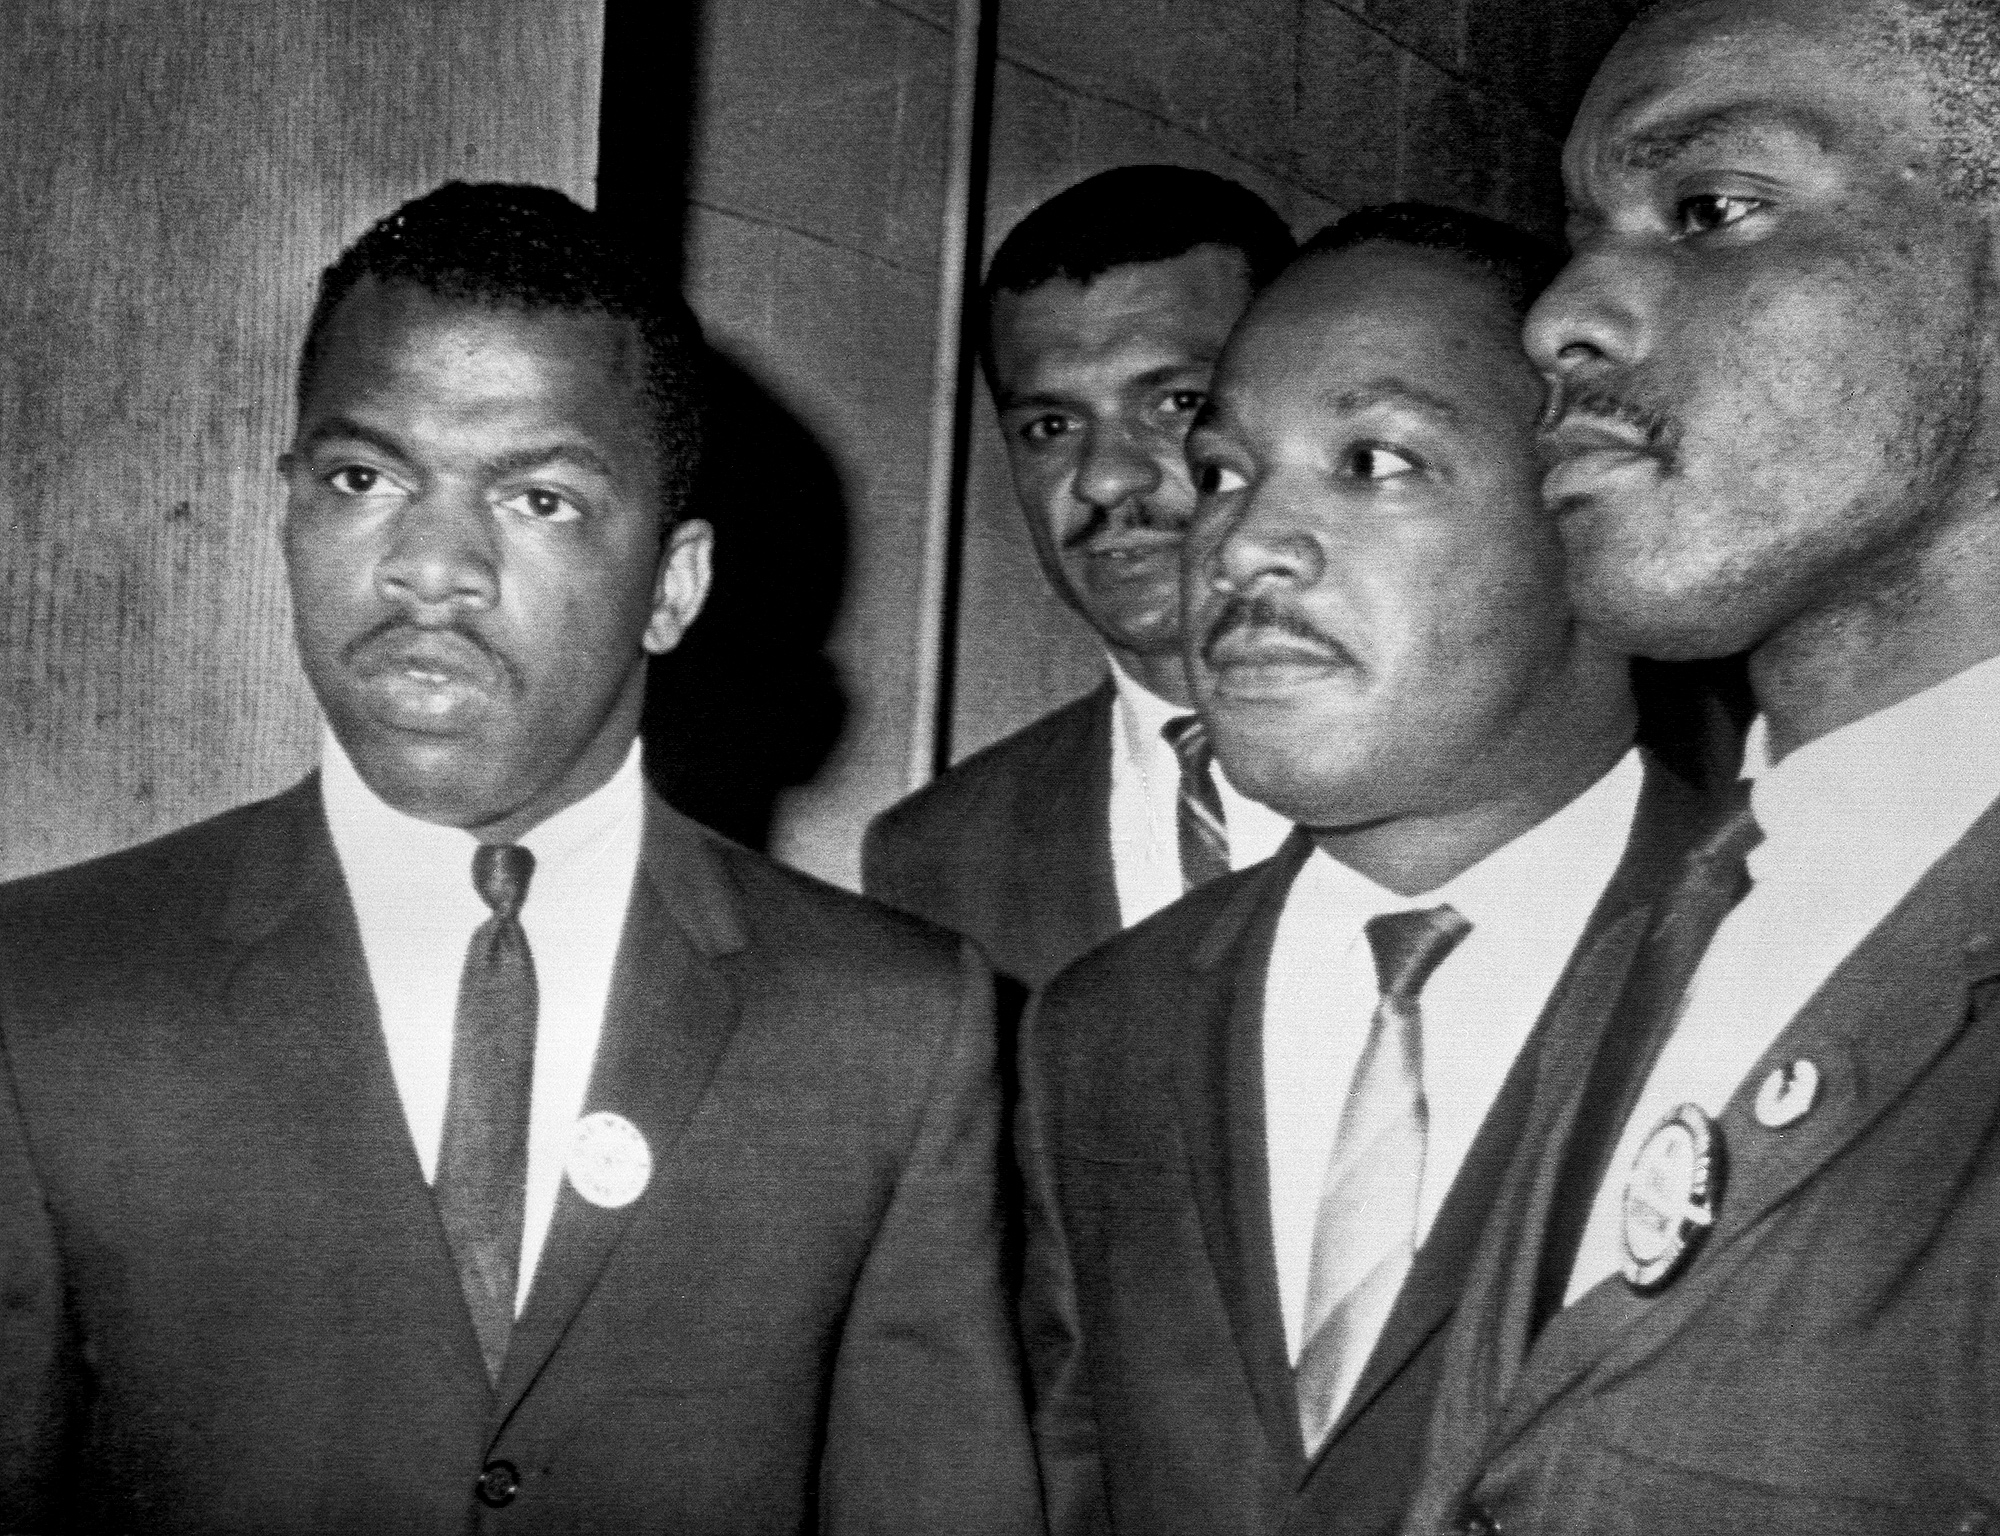 Martin Luther King Jr. with John Lewis